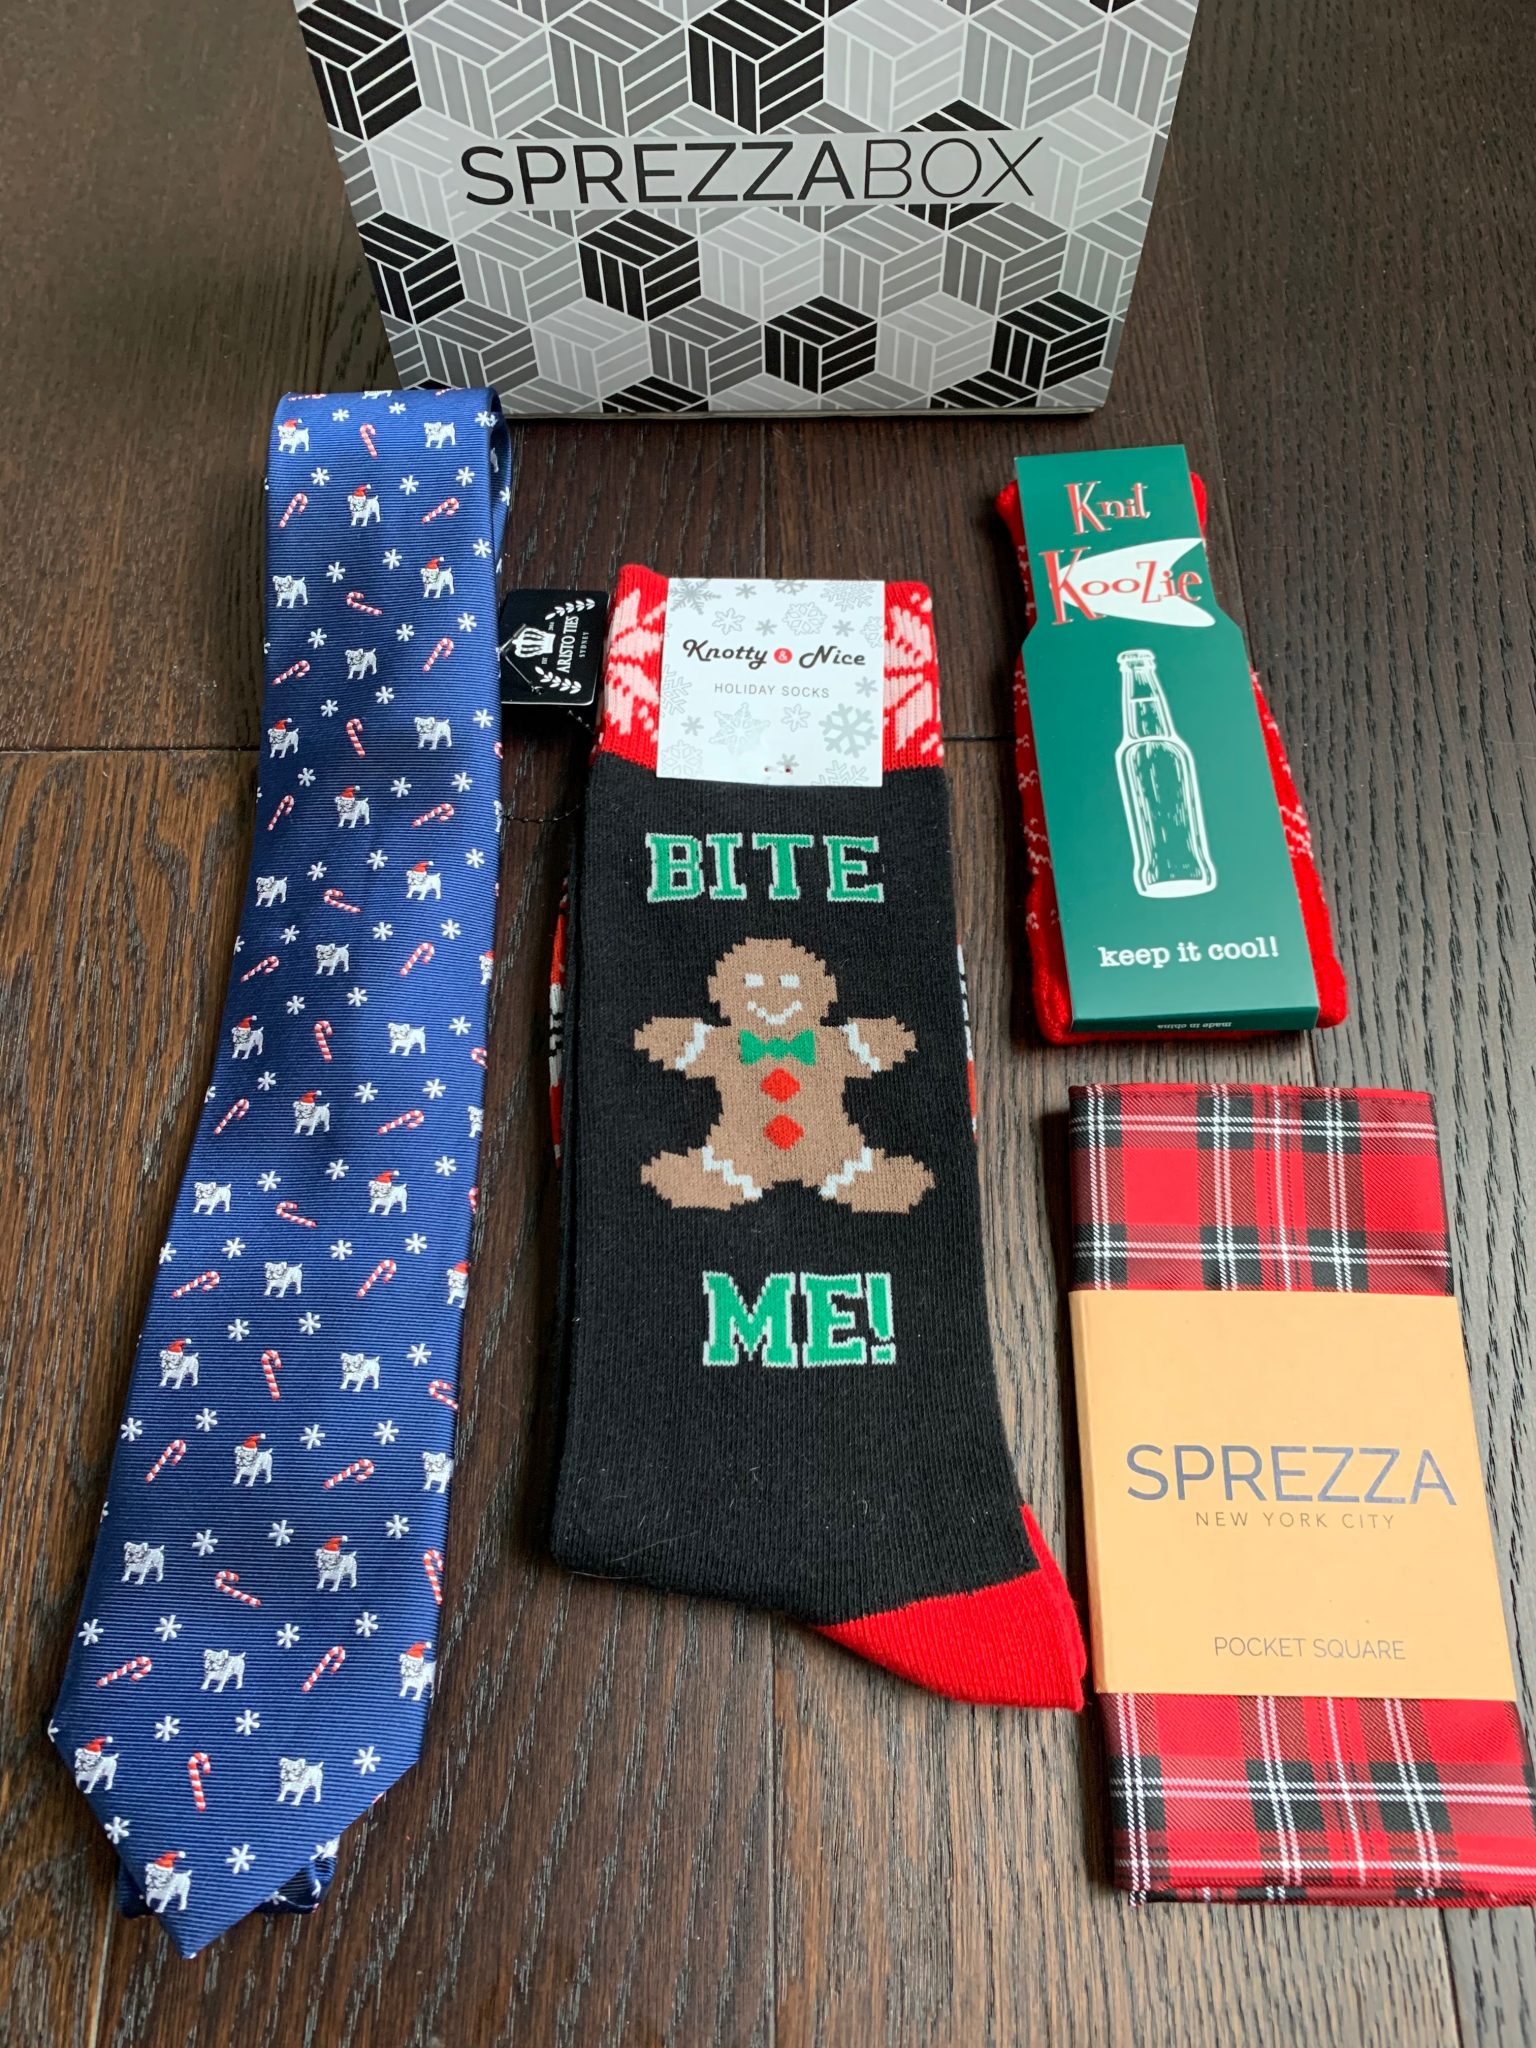 SprezzaBox Review + Coupon Code – December 2019